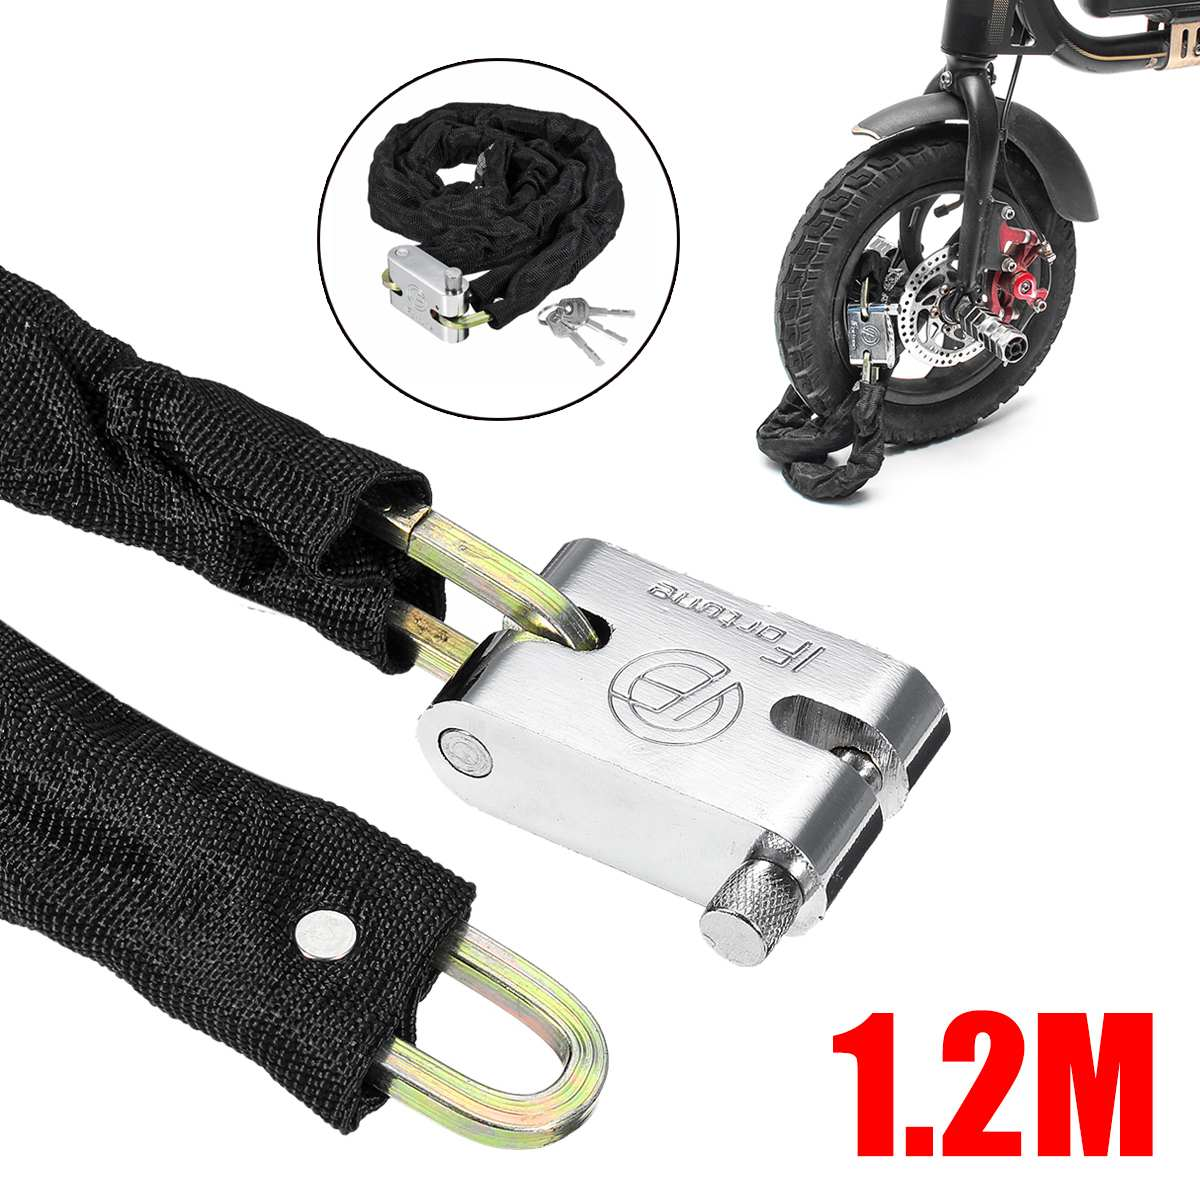 Motorbike Motorcycle Scooter Bicycle Bike Cycling Security Steel Chain U D  a